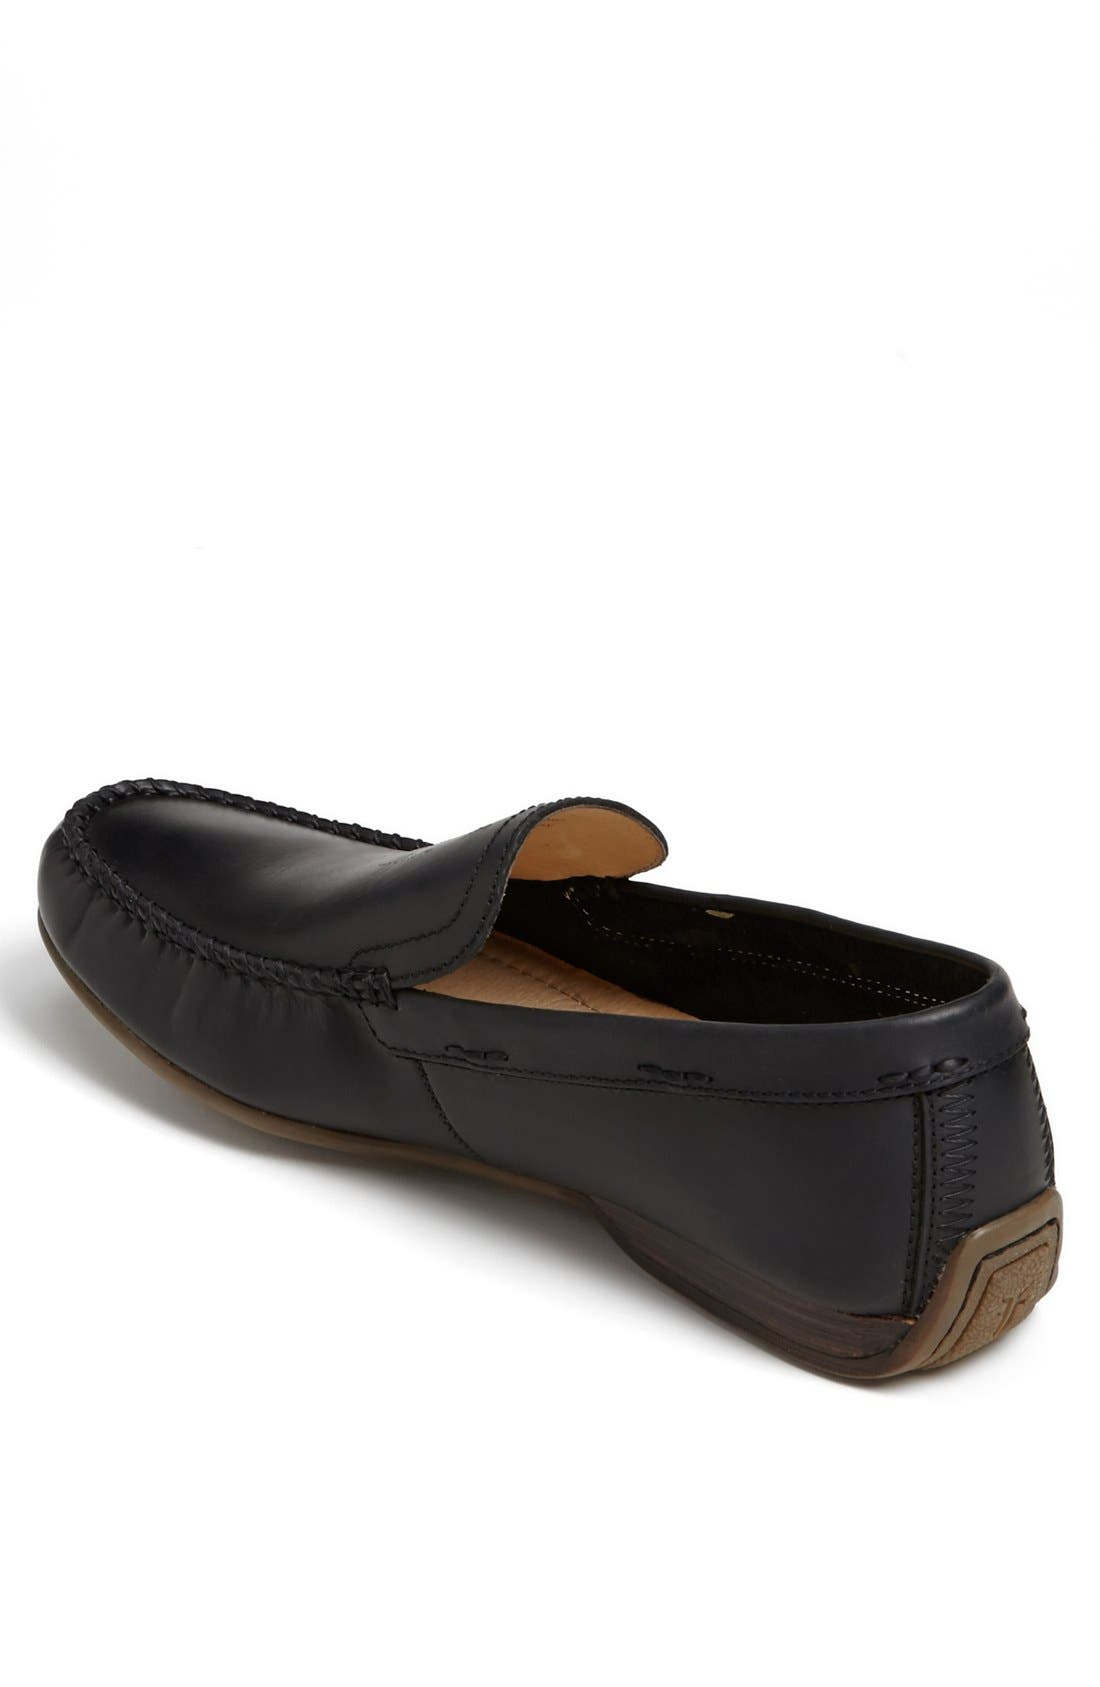 'Lewis' Venetian Loafer,                             Alternate thumbnail 2, color,                             BLACK